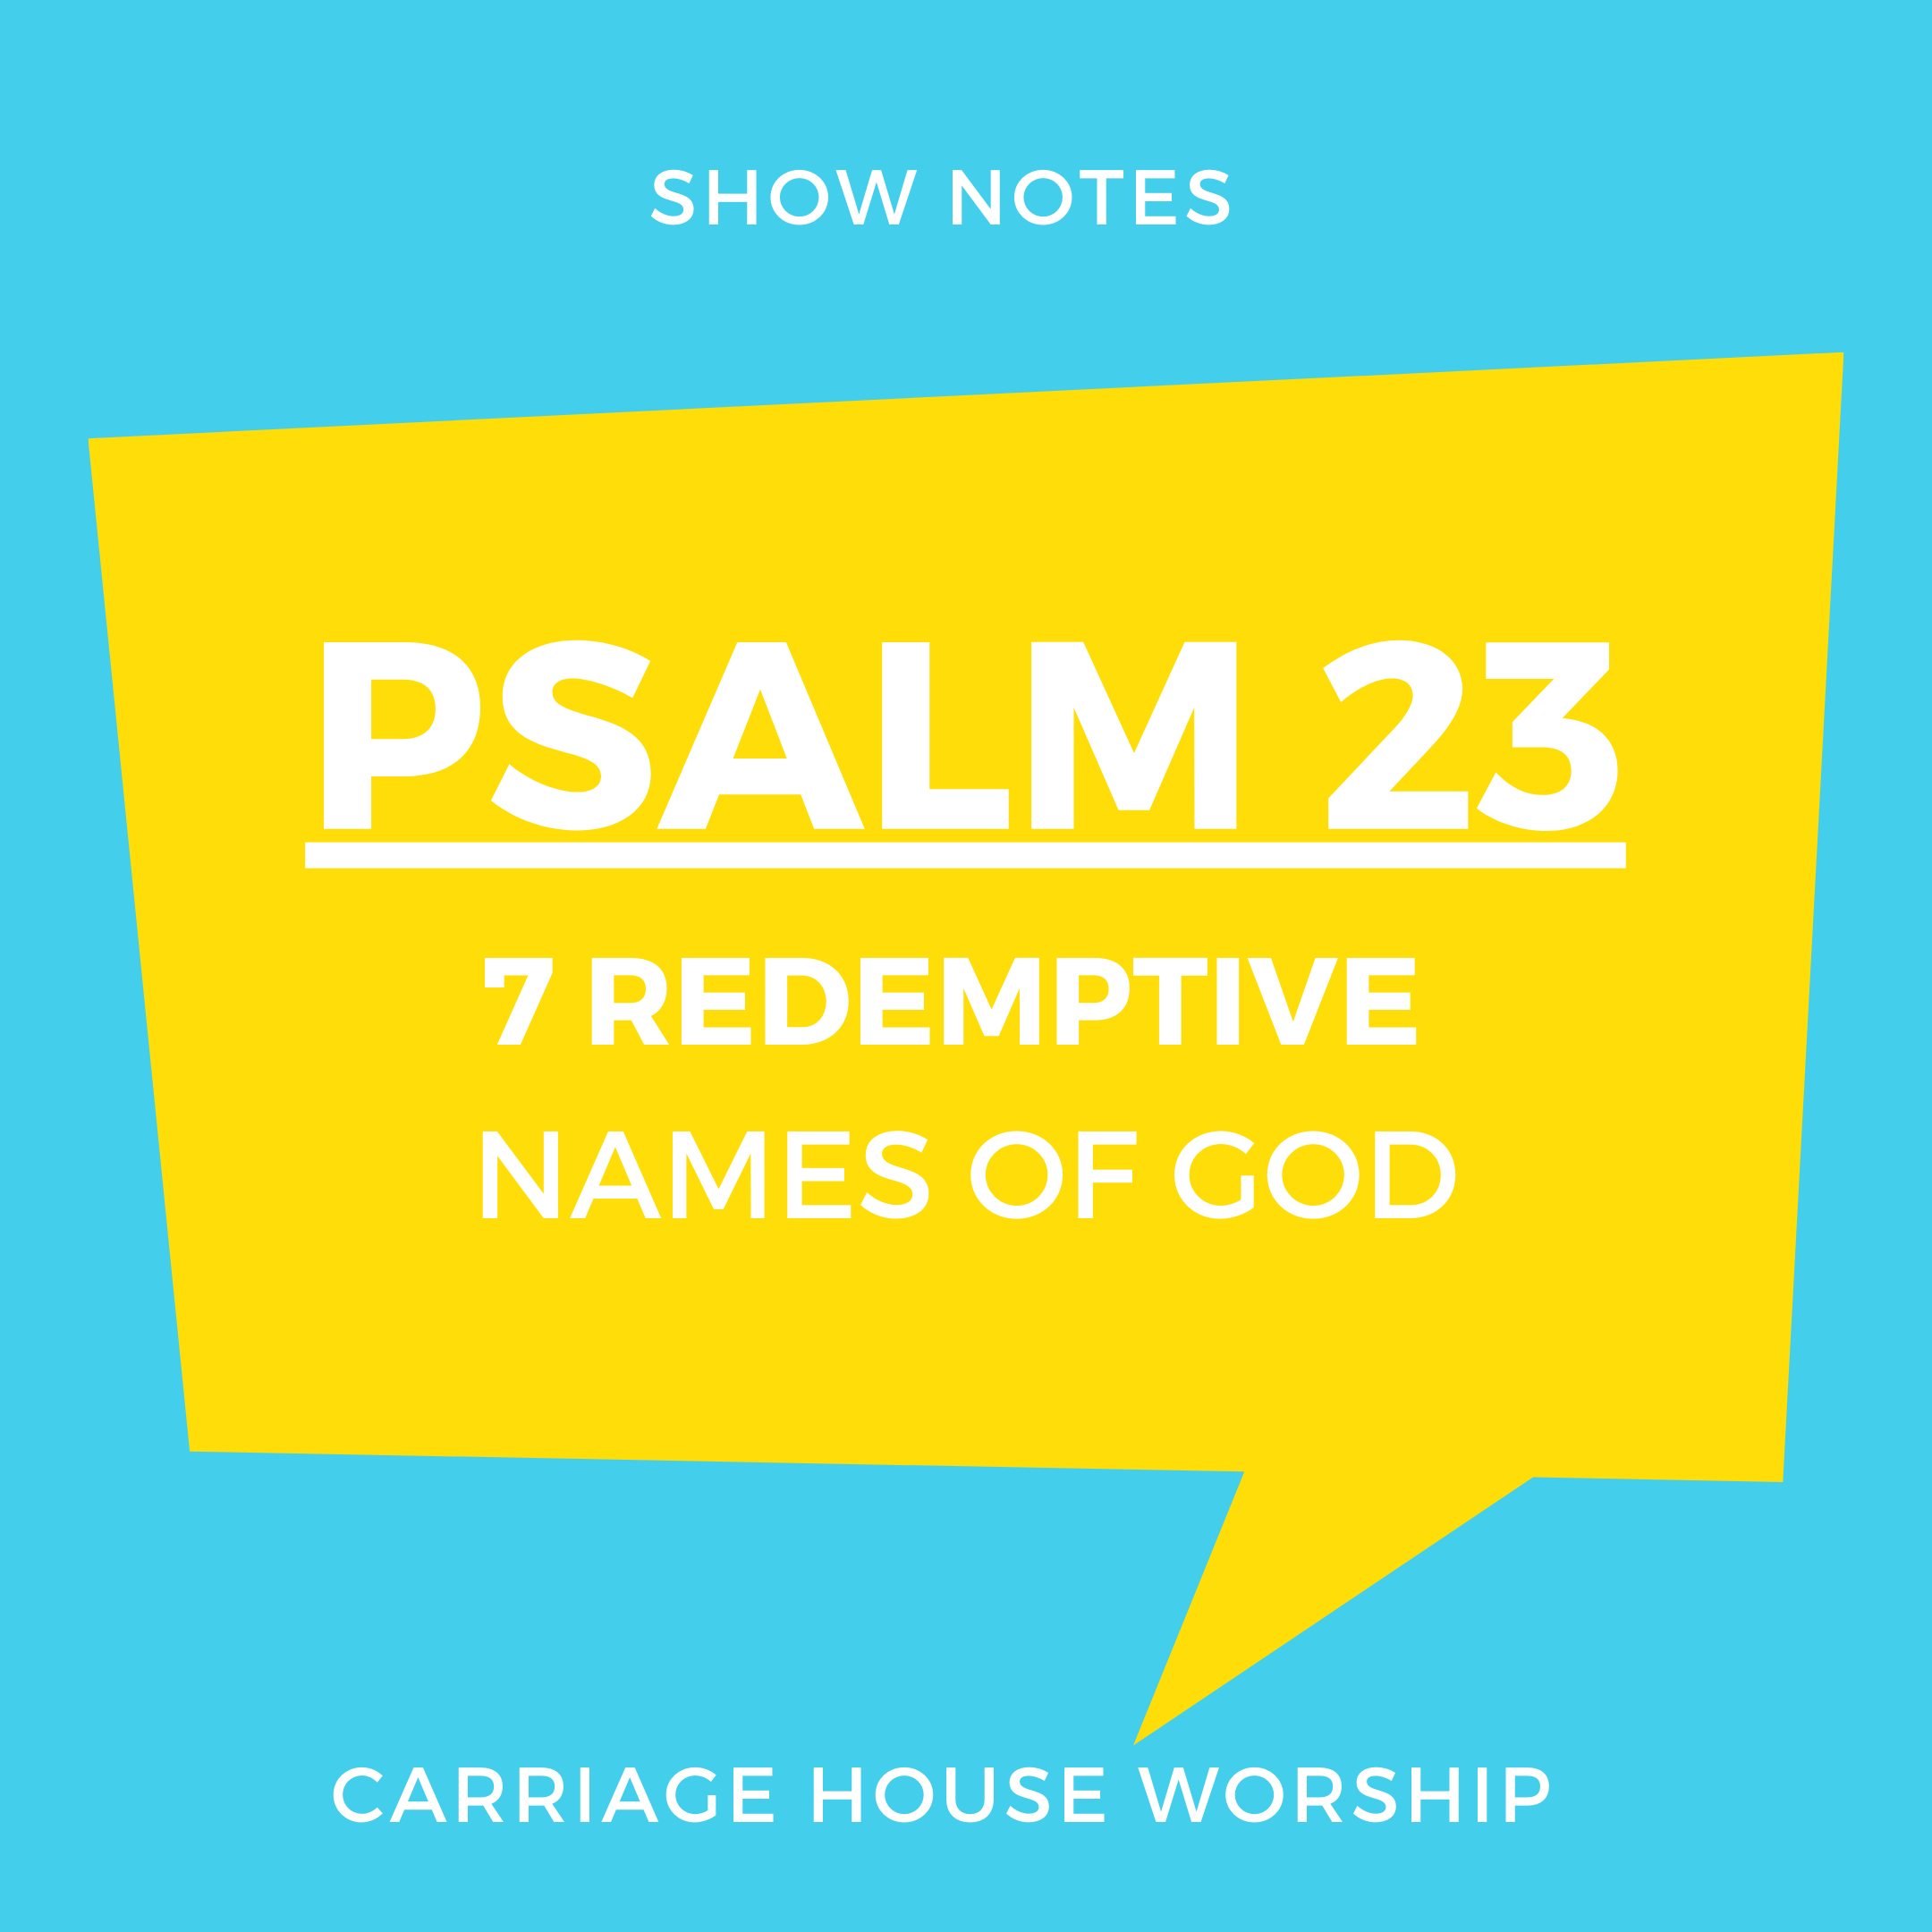 Show Notes 10-12-20 - Psalm 23 - 7 Redemptive Names of God